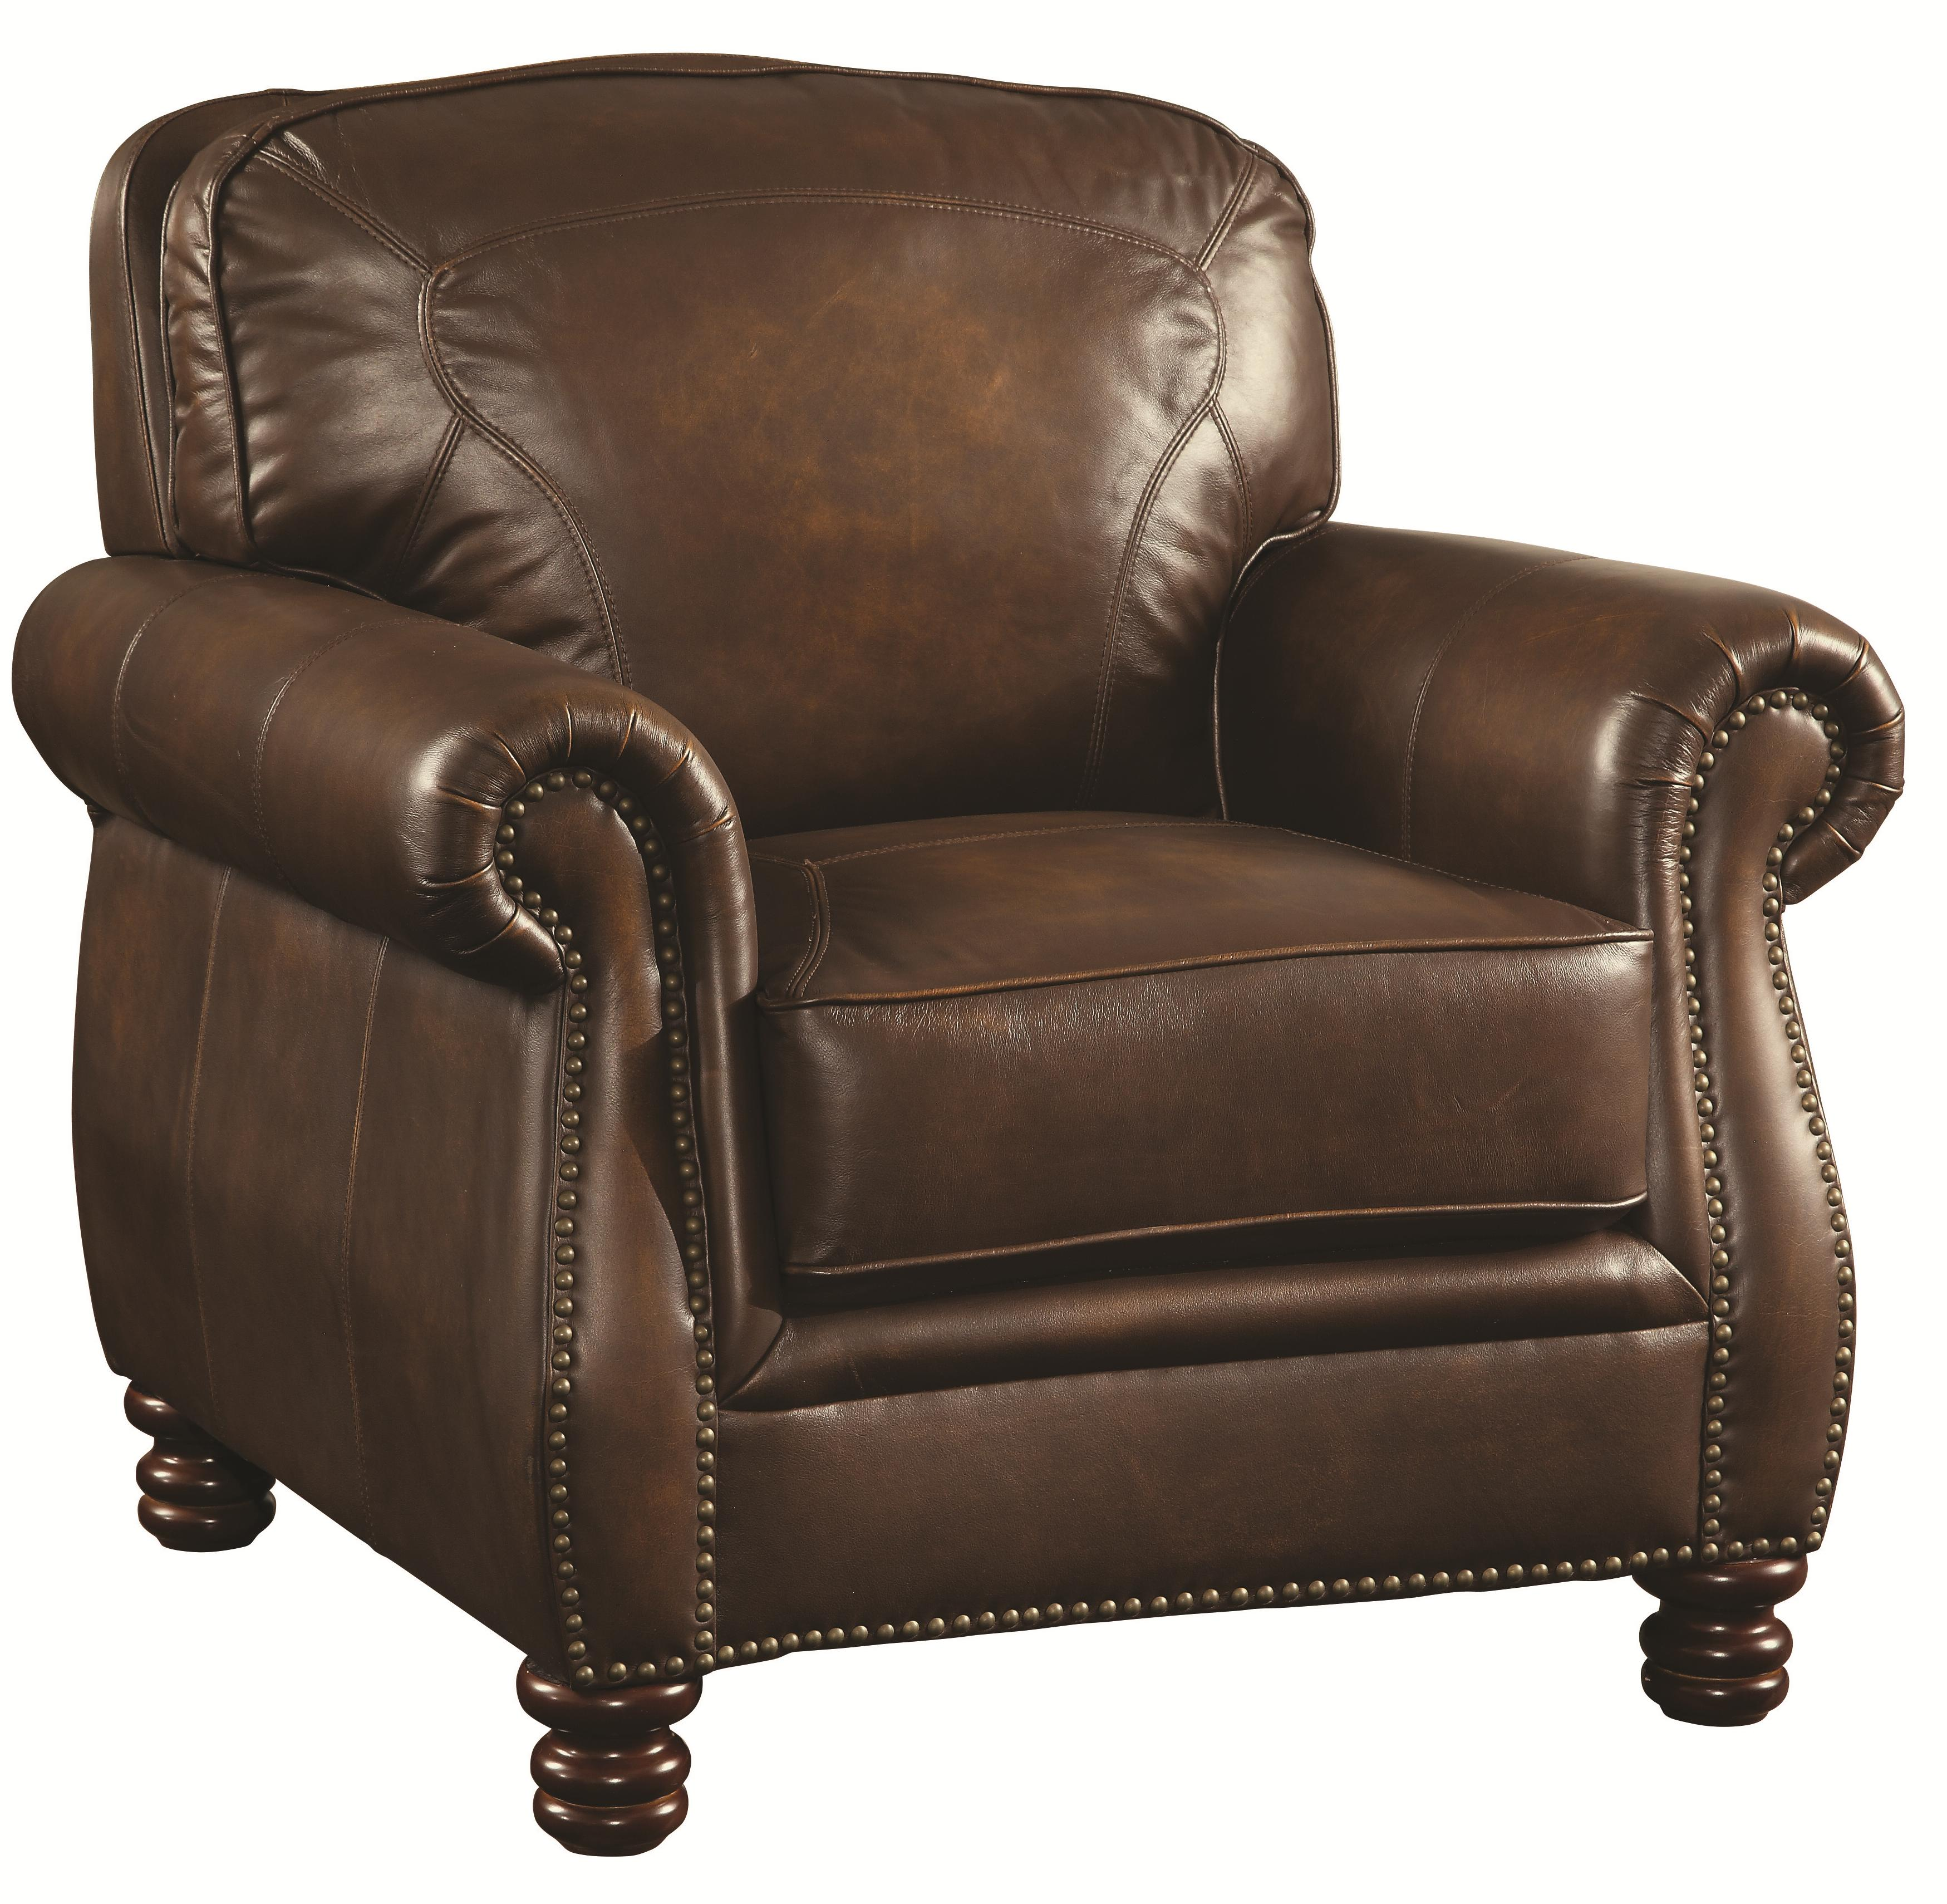 Coaster Montbrook Upholstered Chair - Item Number: 503983-Hand Rubbed Brown